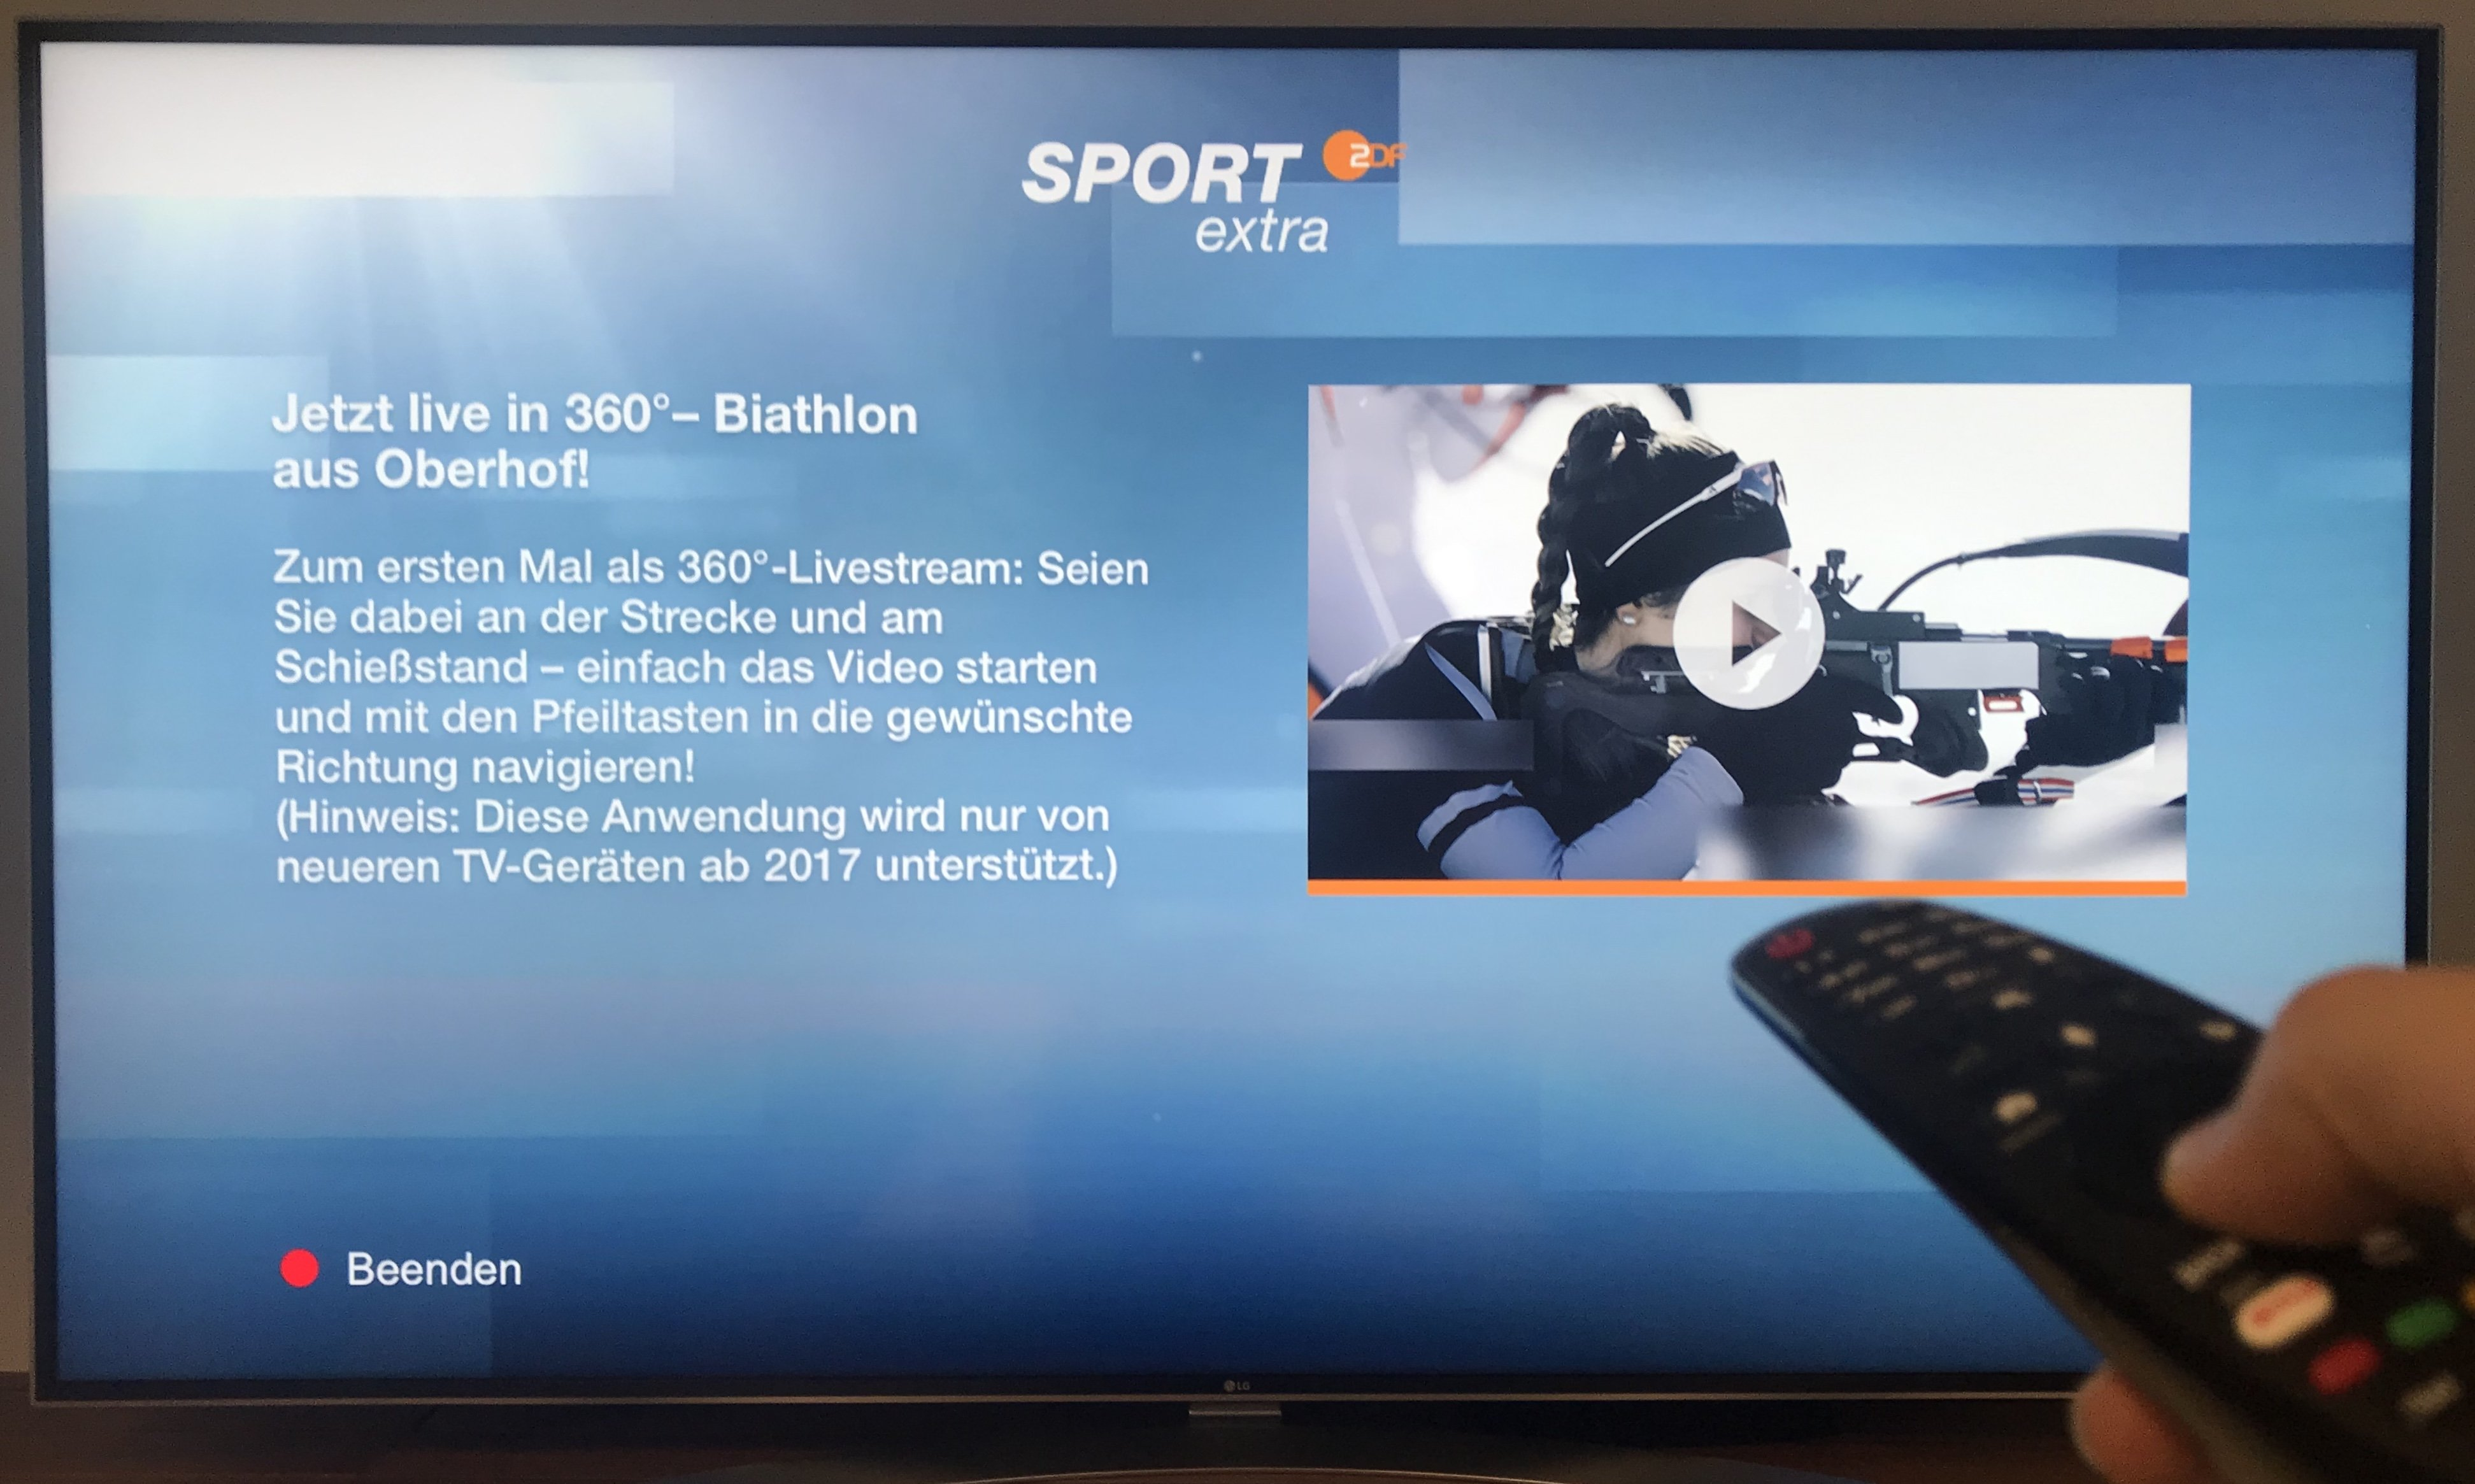 fraunhofer fokus fame zdf 360 video oberholz 2019